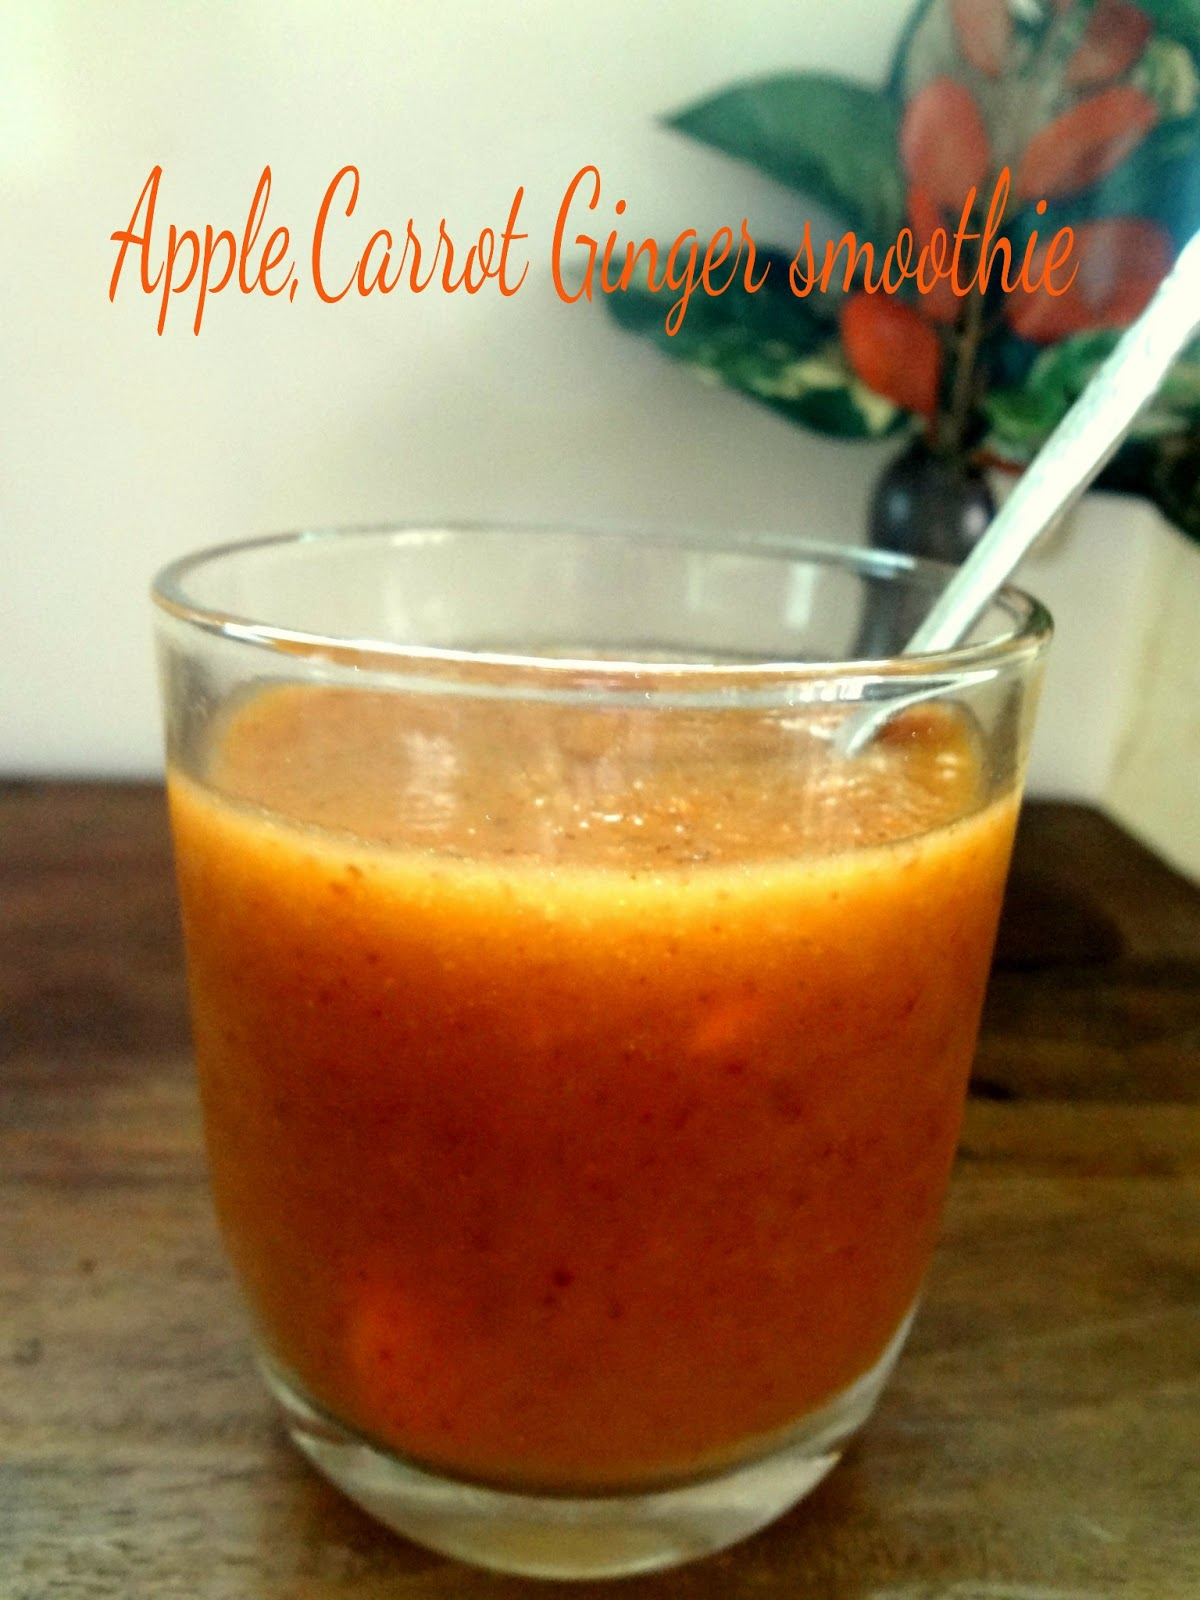 Your Everyday Cook: Apple carrot ginger smoothie